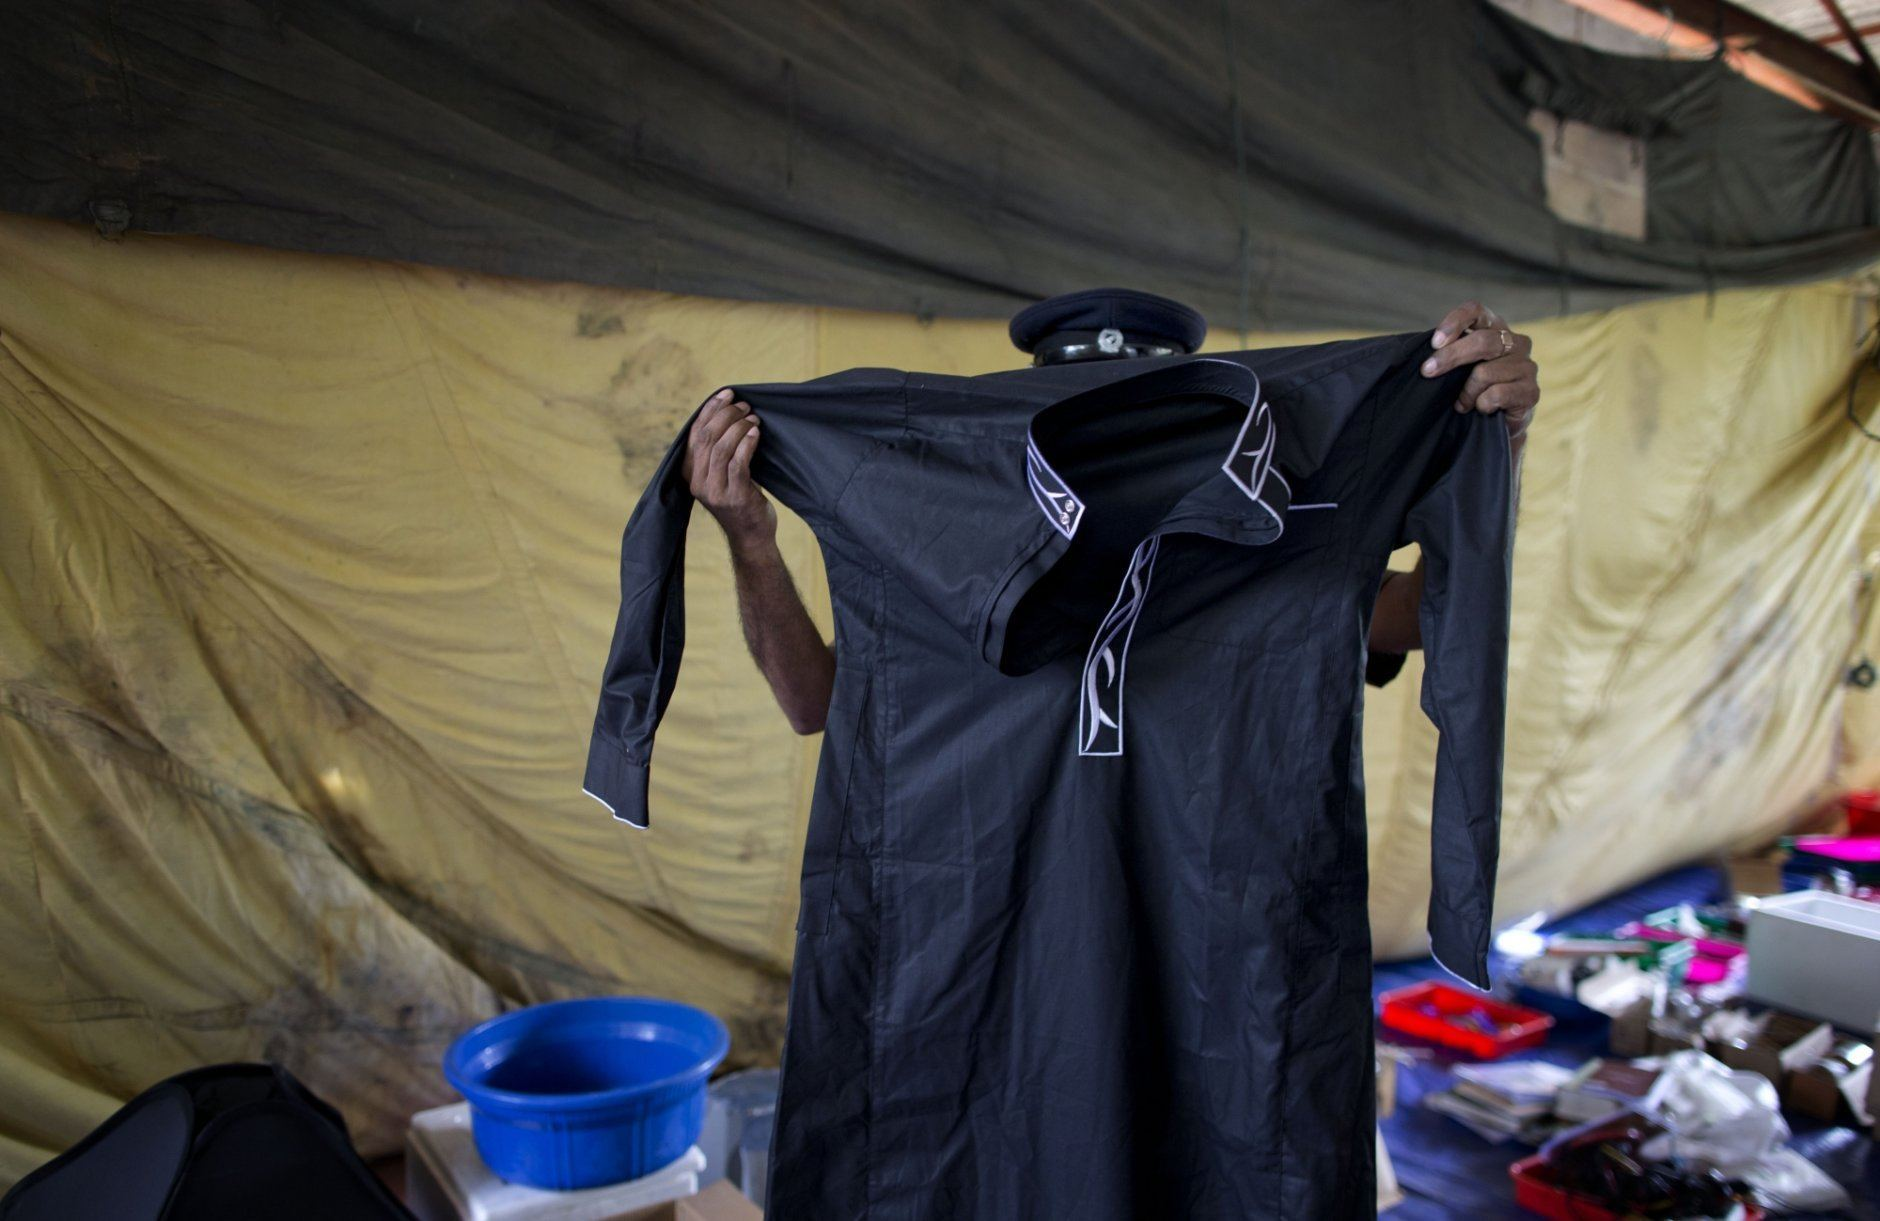 A police officer displays kandura, a traditional robe worn by some Muslim men in the Middle East, in Ampara, Sri Lanka, Sunday, April 28, 2019. Police in Ampara showed The Associated Press on Sunday the explosives, chemicals and Islamic State flag they recovered from the site of one security force raid in the region as Sri Lanka's Catholics celebrated at televised Mass in the safety of their homes. (AP Photo/Gemunu Amarasinghe)